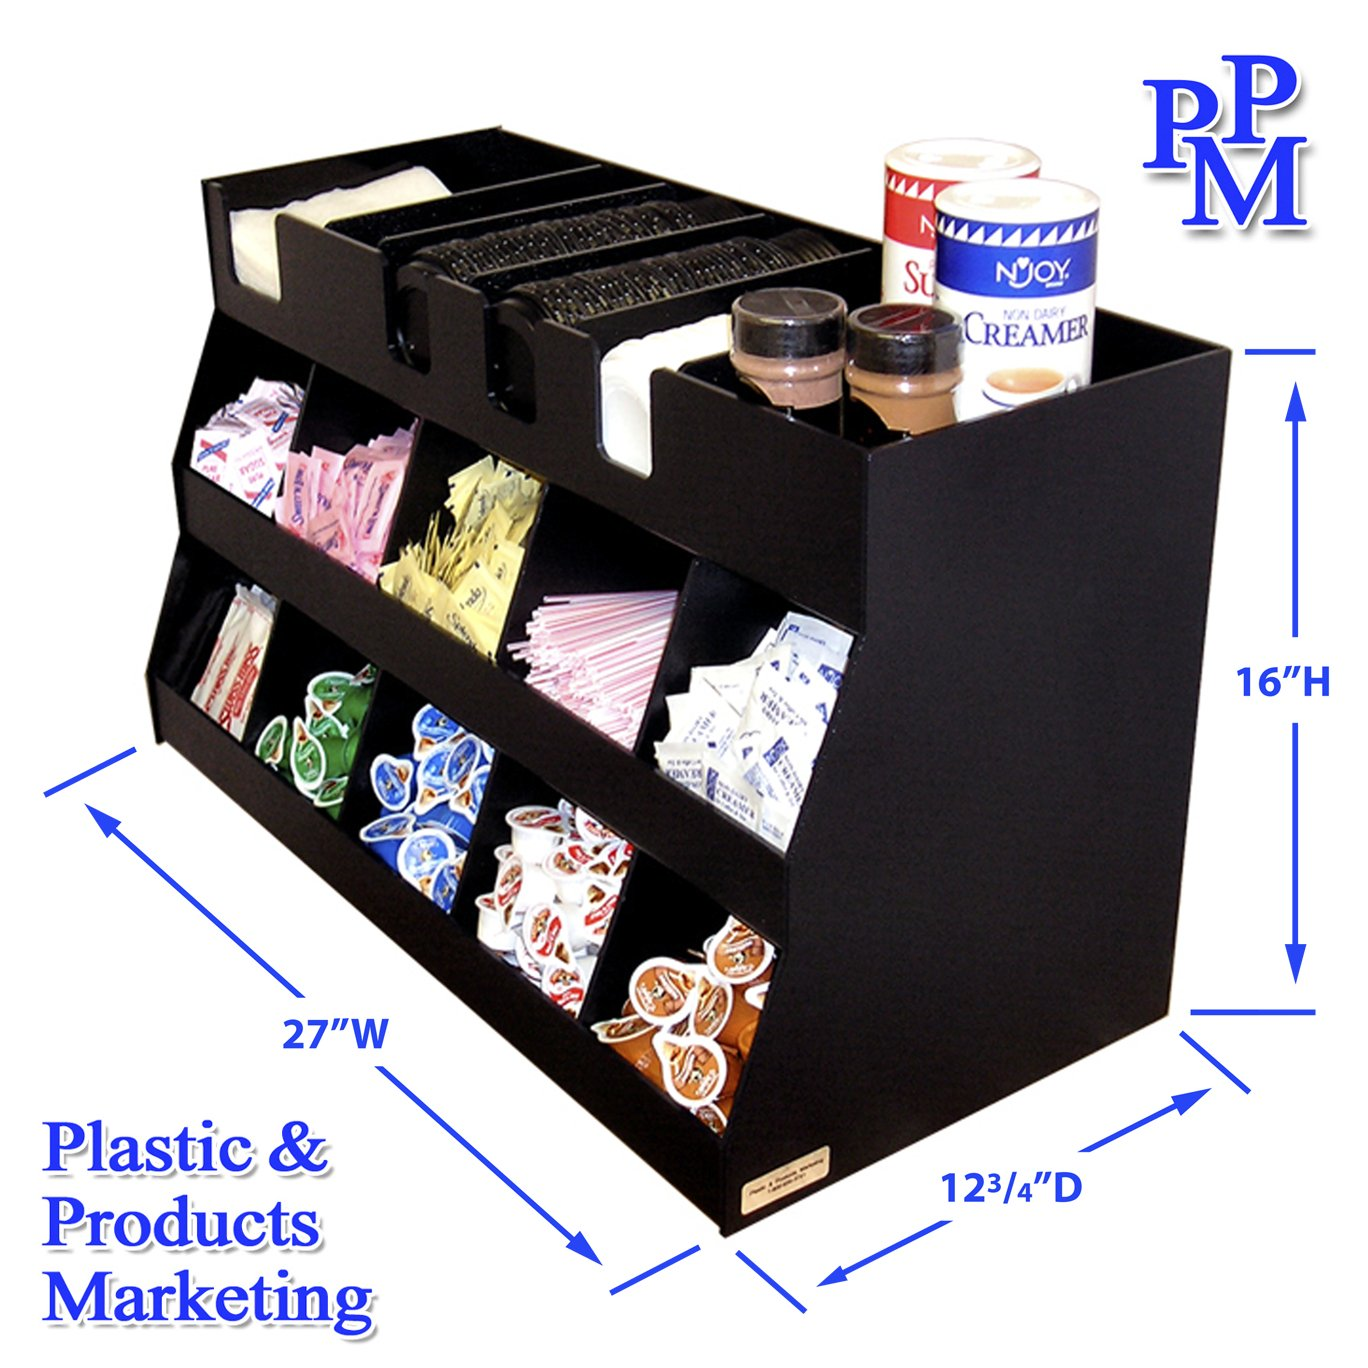 Large Office Coffee Organizer. 27'' W x 12 3/4'' D x 16'' High. Top Shelf Adds Storage For Lids, Canisters, Etc. Proudly Made in the USA by PPM